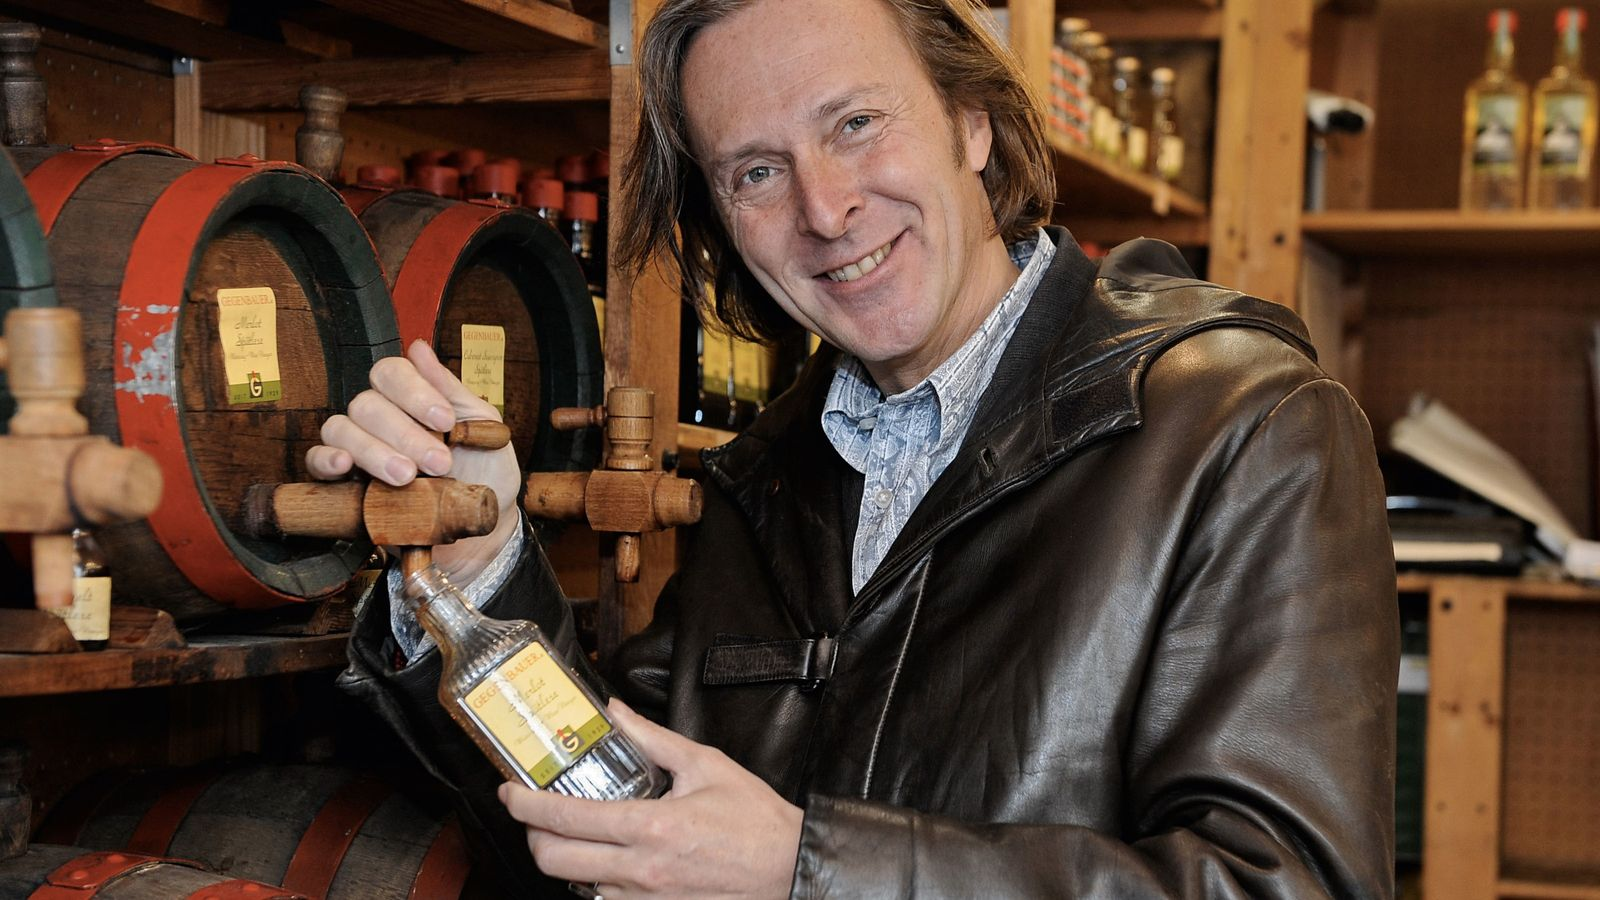 They call Erwin Gegenbauer the 'Vinegar Pope' as it's said he makes the best vinegar in ...